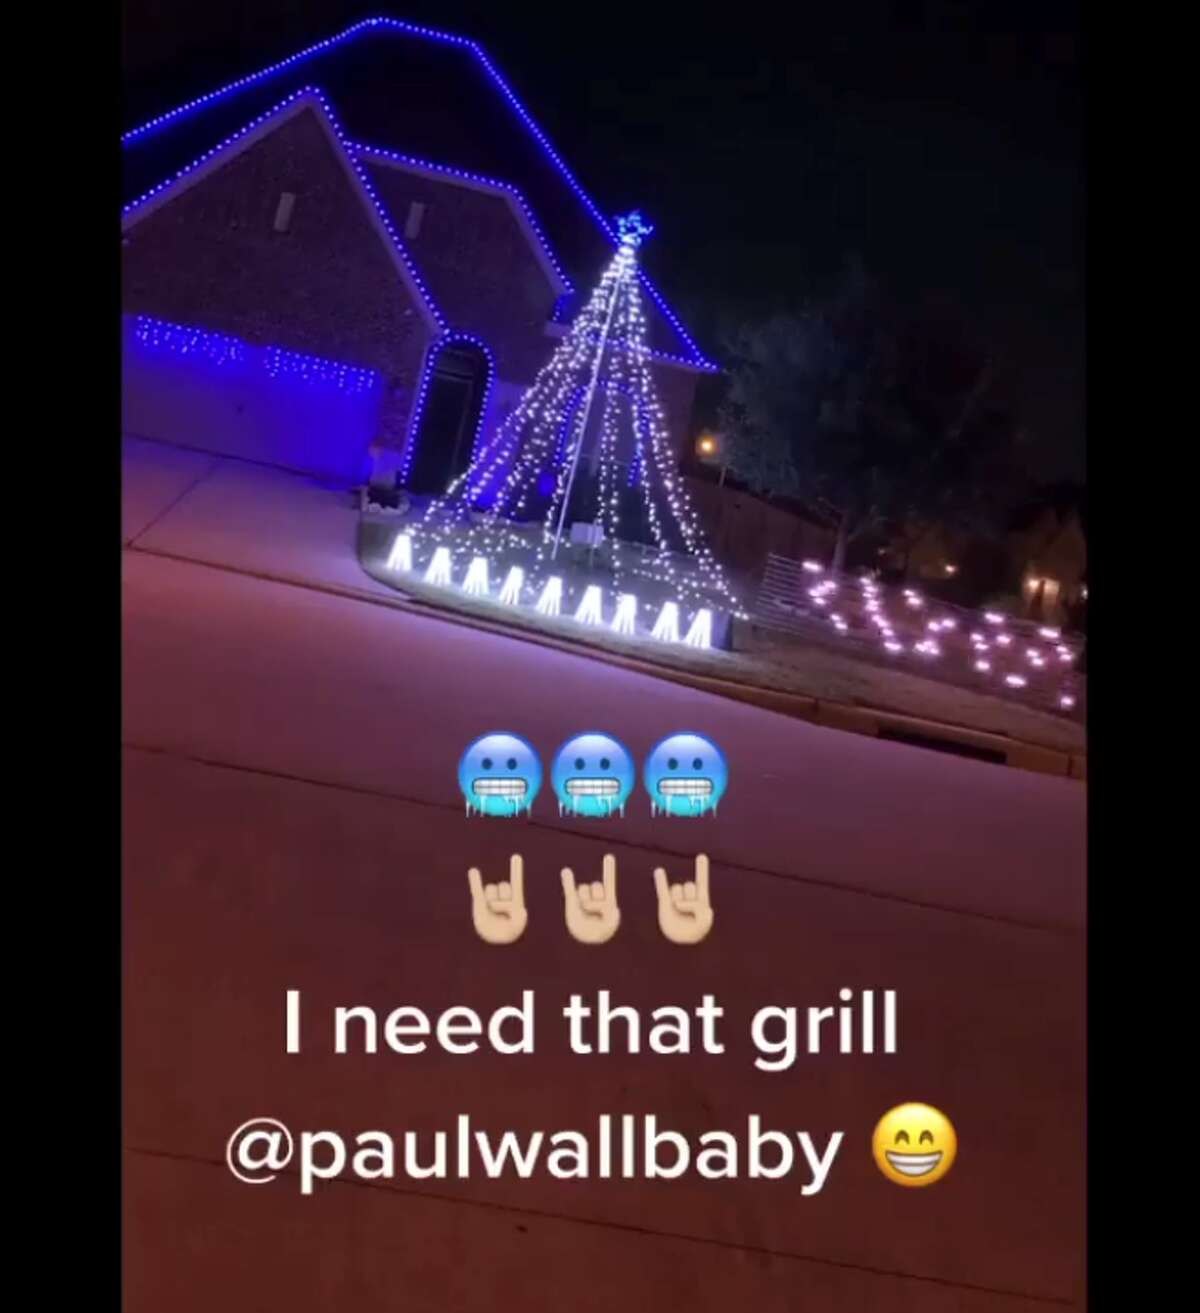 Former Houston DJ Frankie To-ong has a few iconic H-town muses when it comes to Christmas decorations in his neighborhood including Paul Wall and Slim Thug.